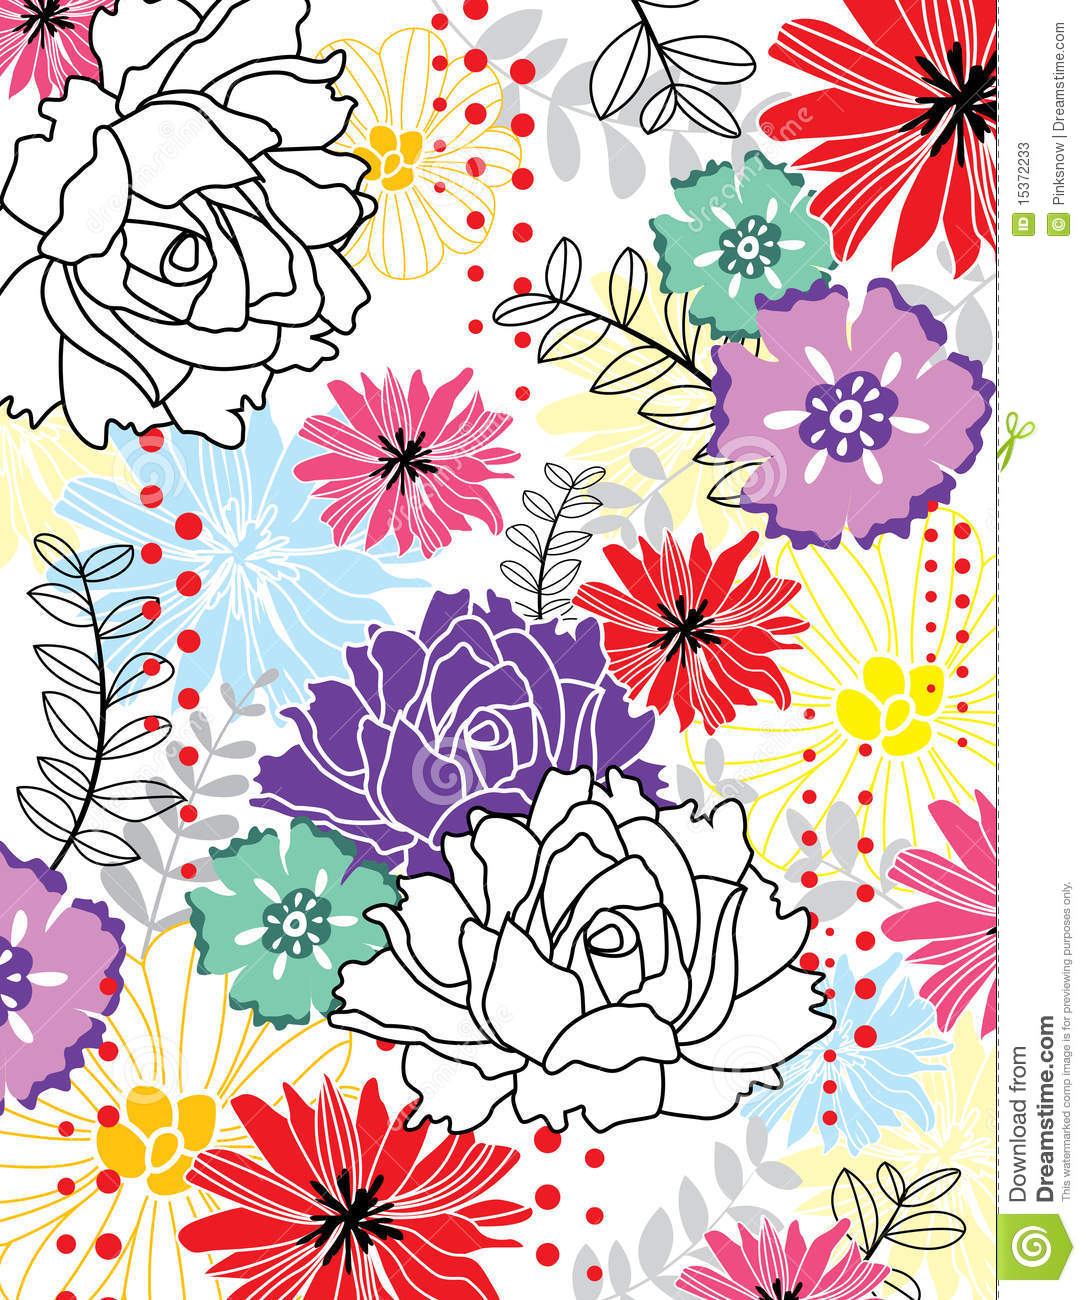 Carta da parati dei fiori illustrazione vettoriale for Carta da parati online shop